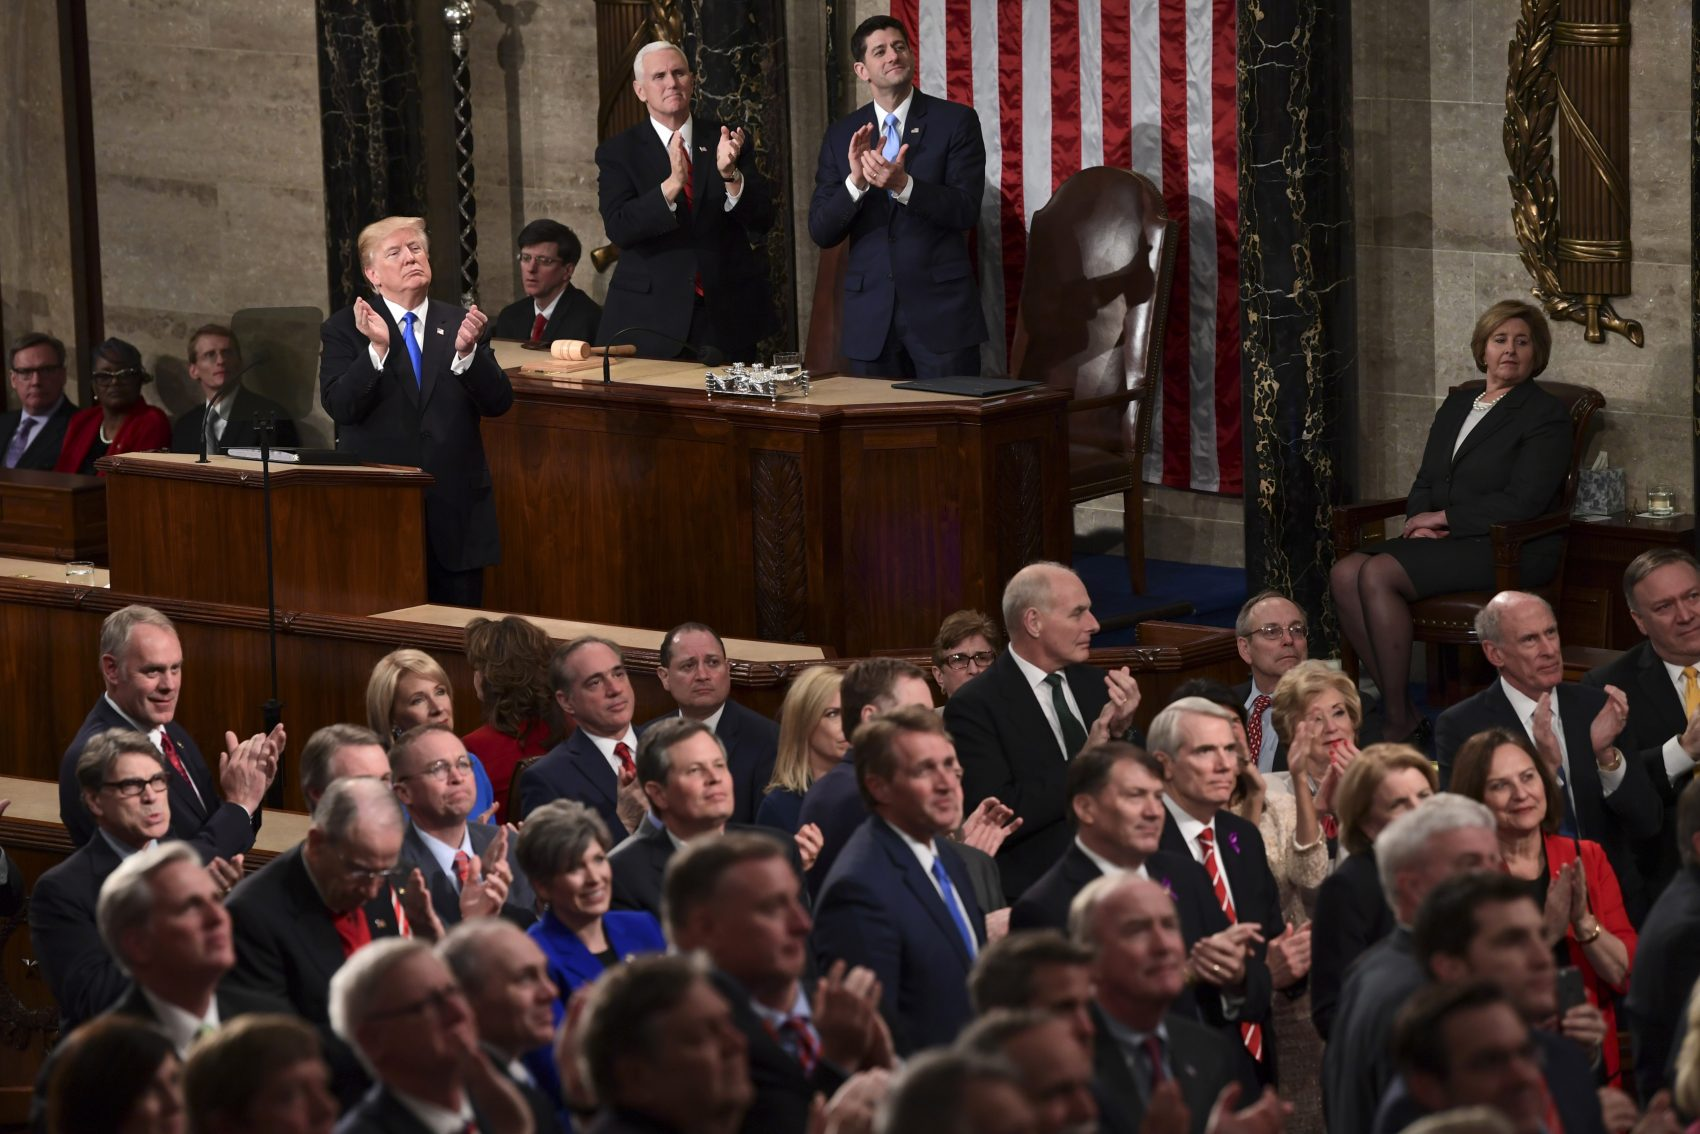 President Donald Trump leads applause for guests in the first lady's box during the State of the Union address to a joint session of Congress on Capitol Hill in Washington, Tuesday, Jan. 30, 2018. (Susan Walsh/AP)